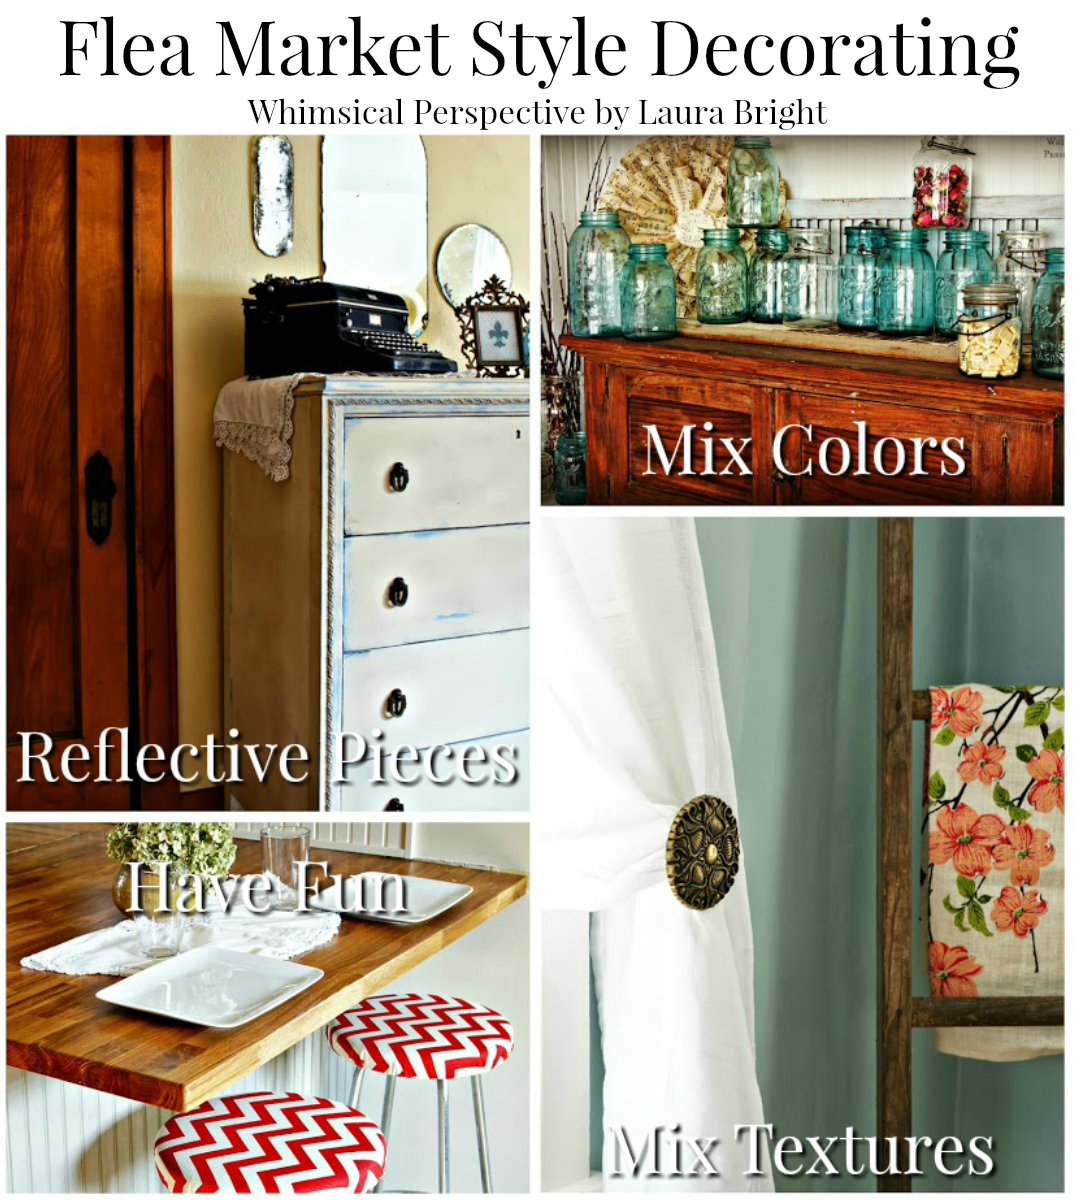 Whimsical Perspective: Flea Market Style Decorating